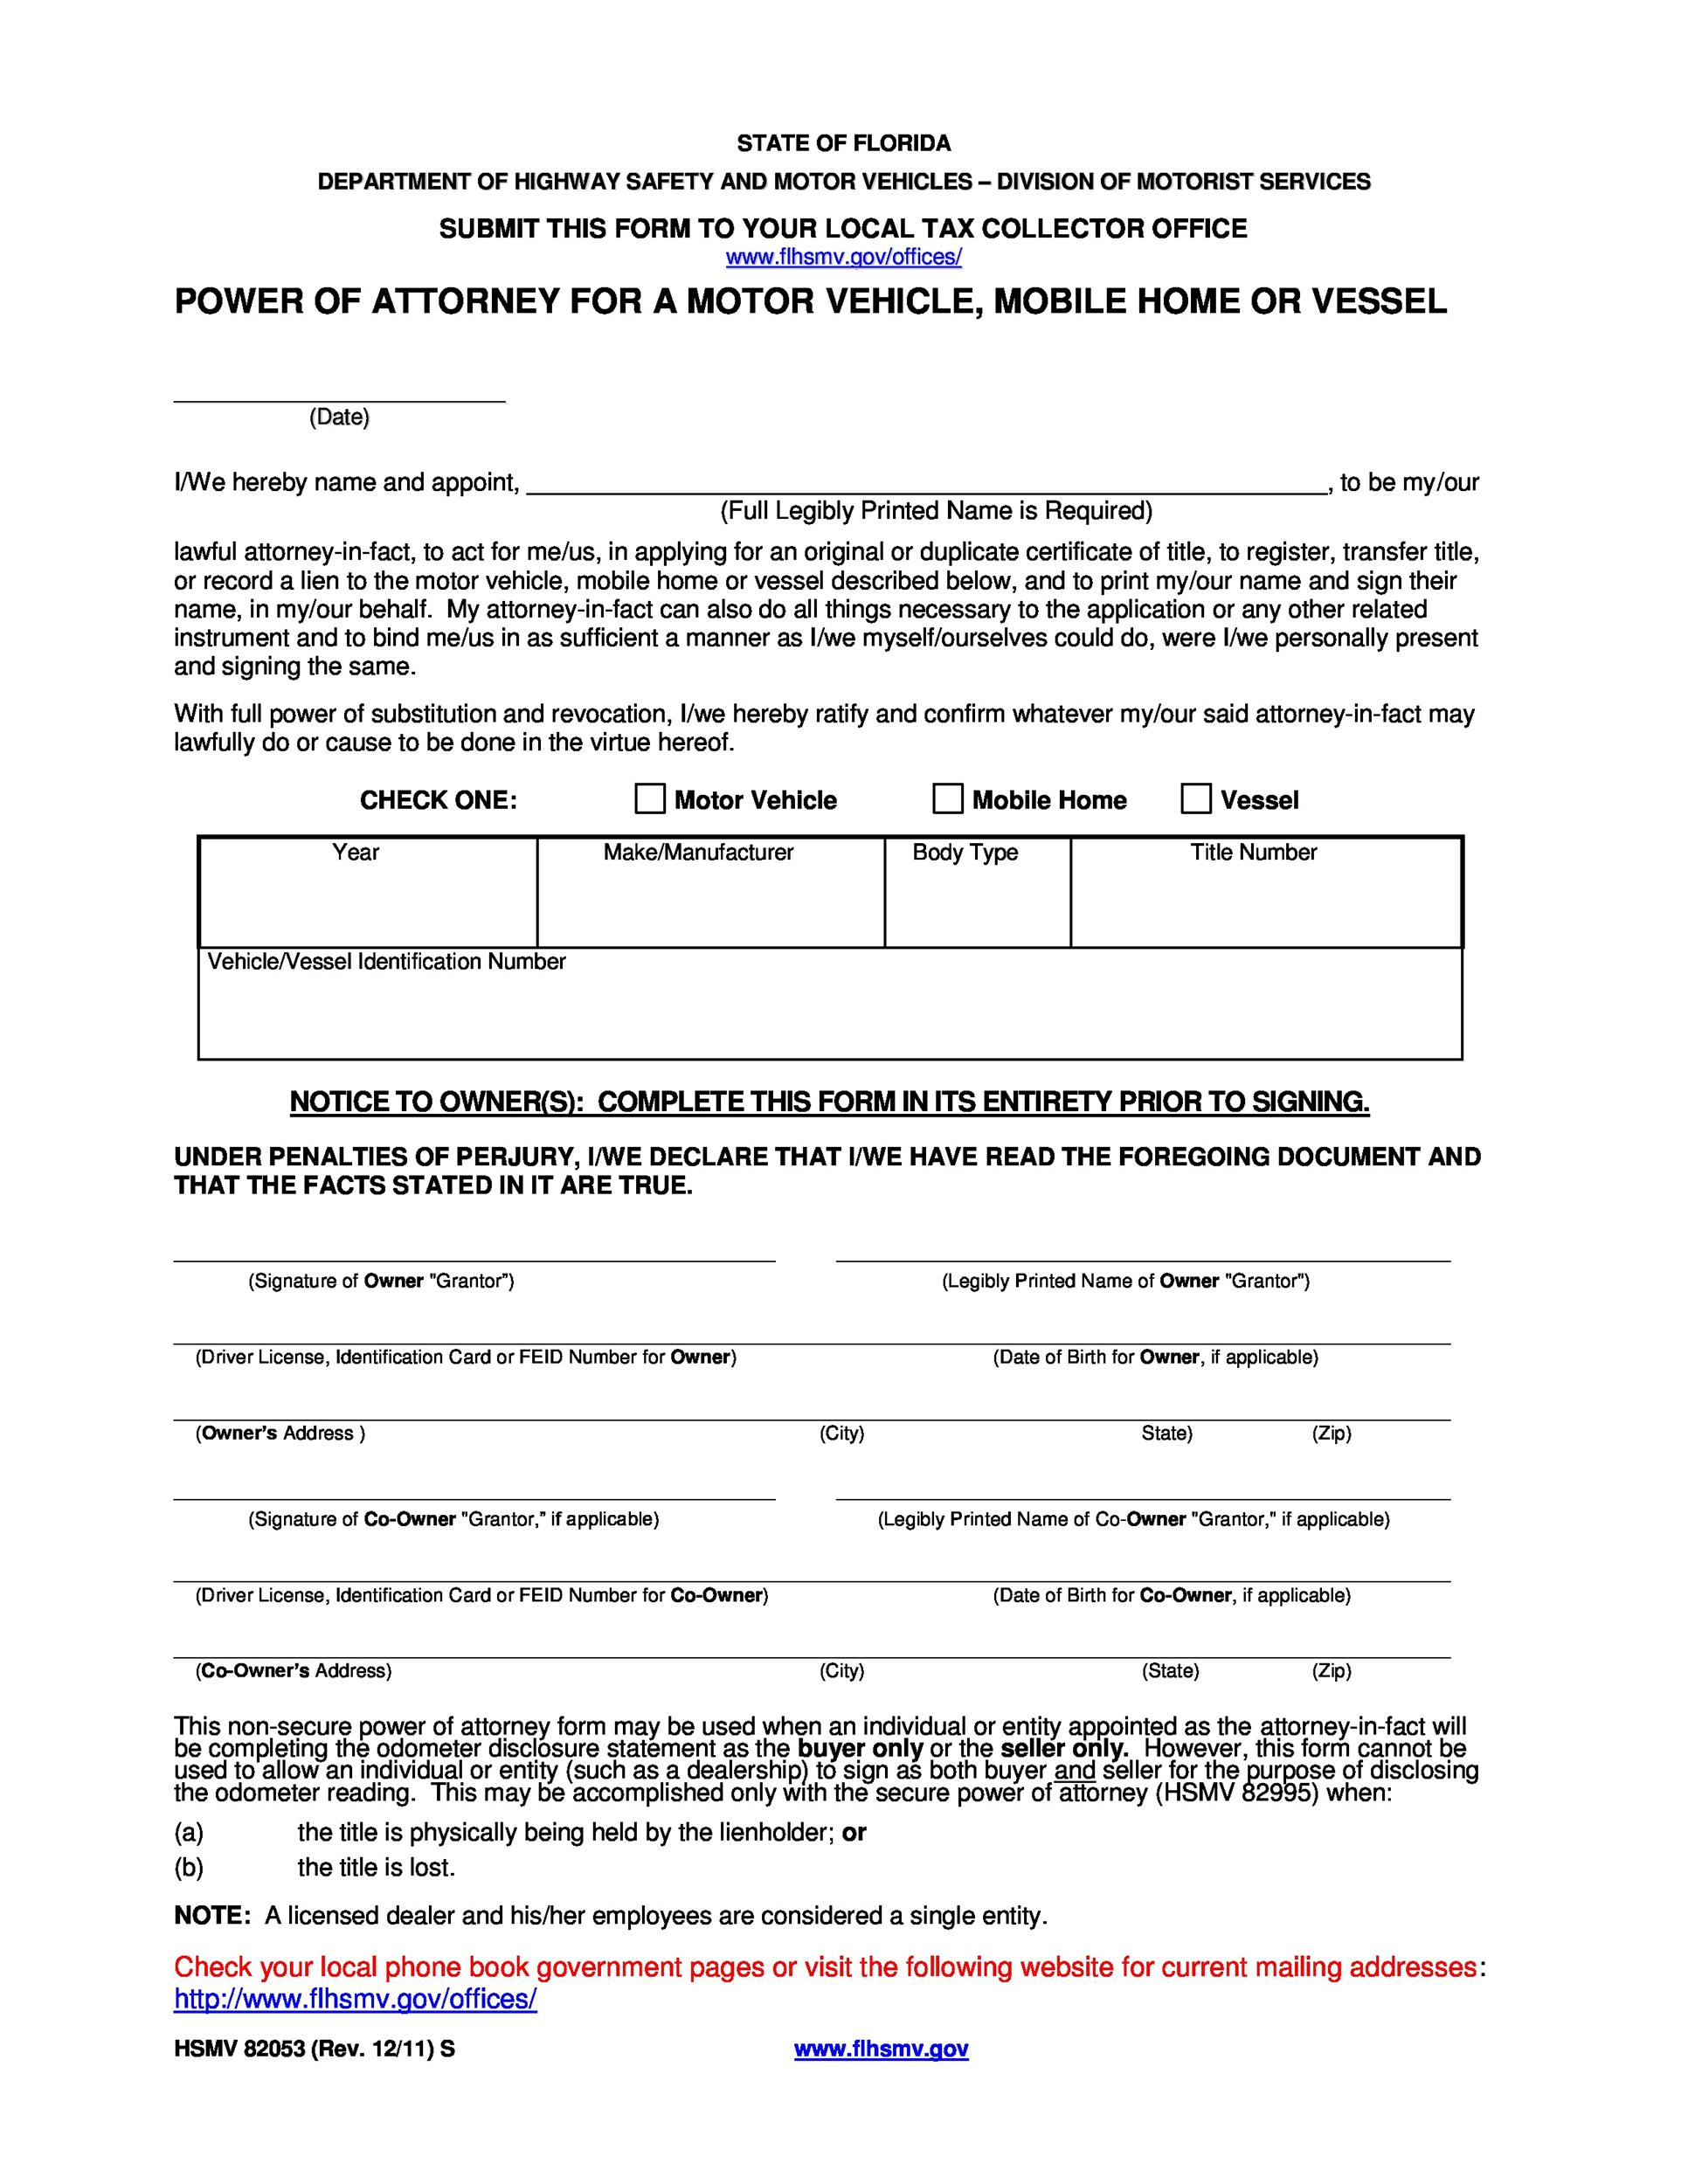 50 free power of attorney forms templates durable medicalgeneral printable power of attorney 09 falaconquin